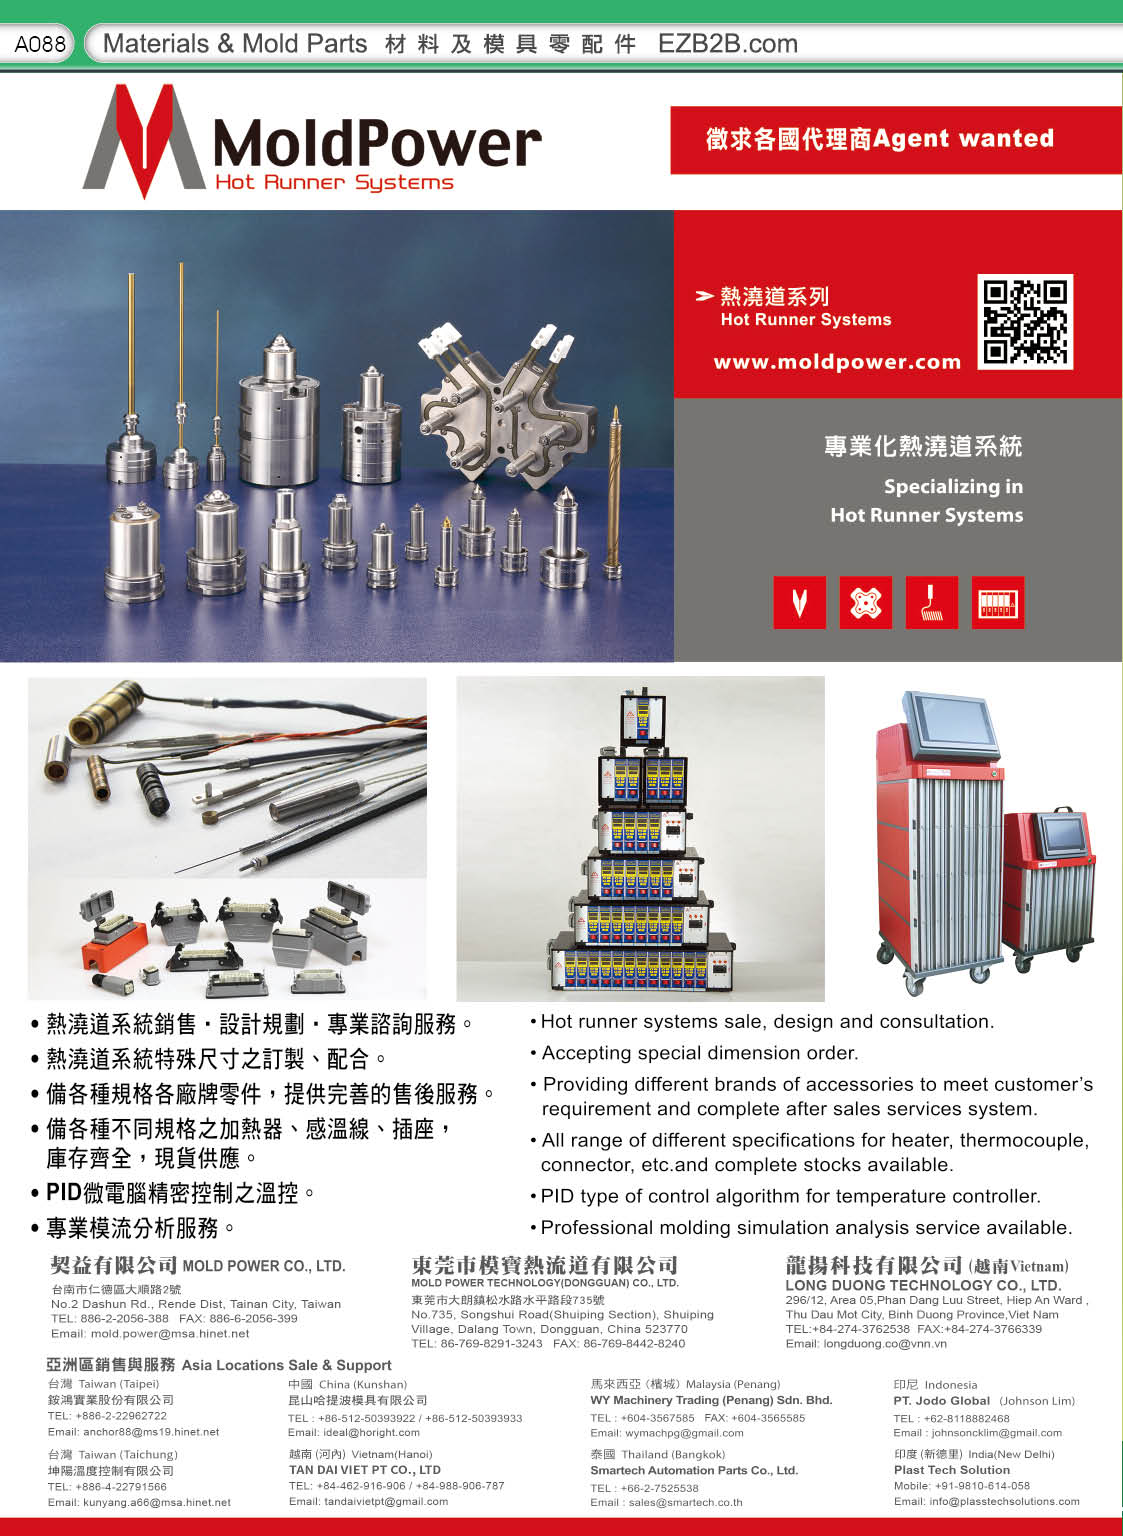 MOLD POWER CO., LTD.